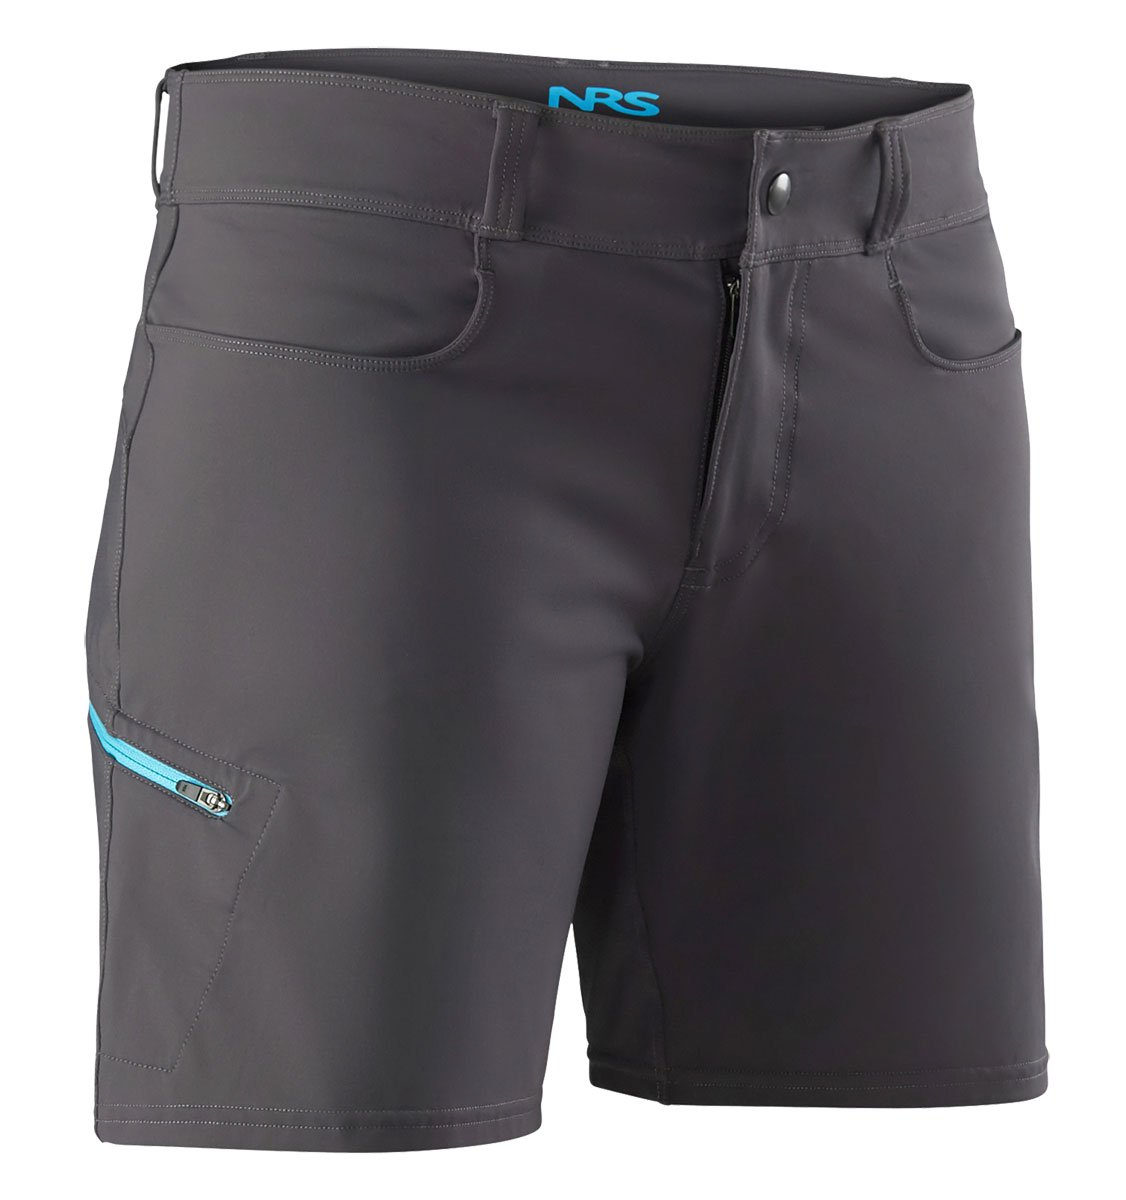 NRS Women 's Guide Shorts 6 ガンメタル B0797RC2VY